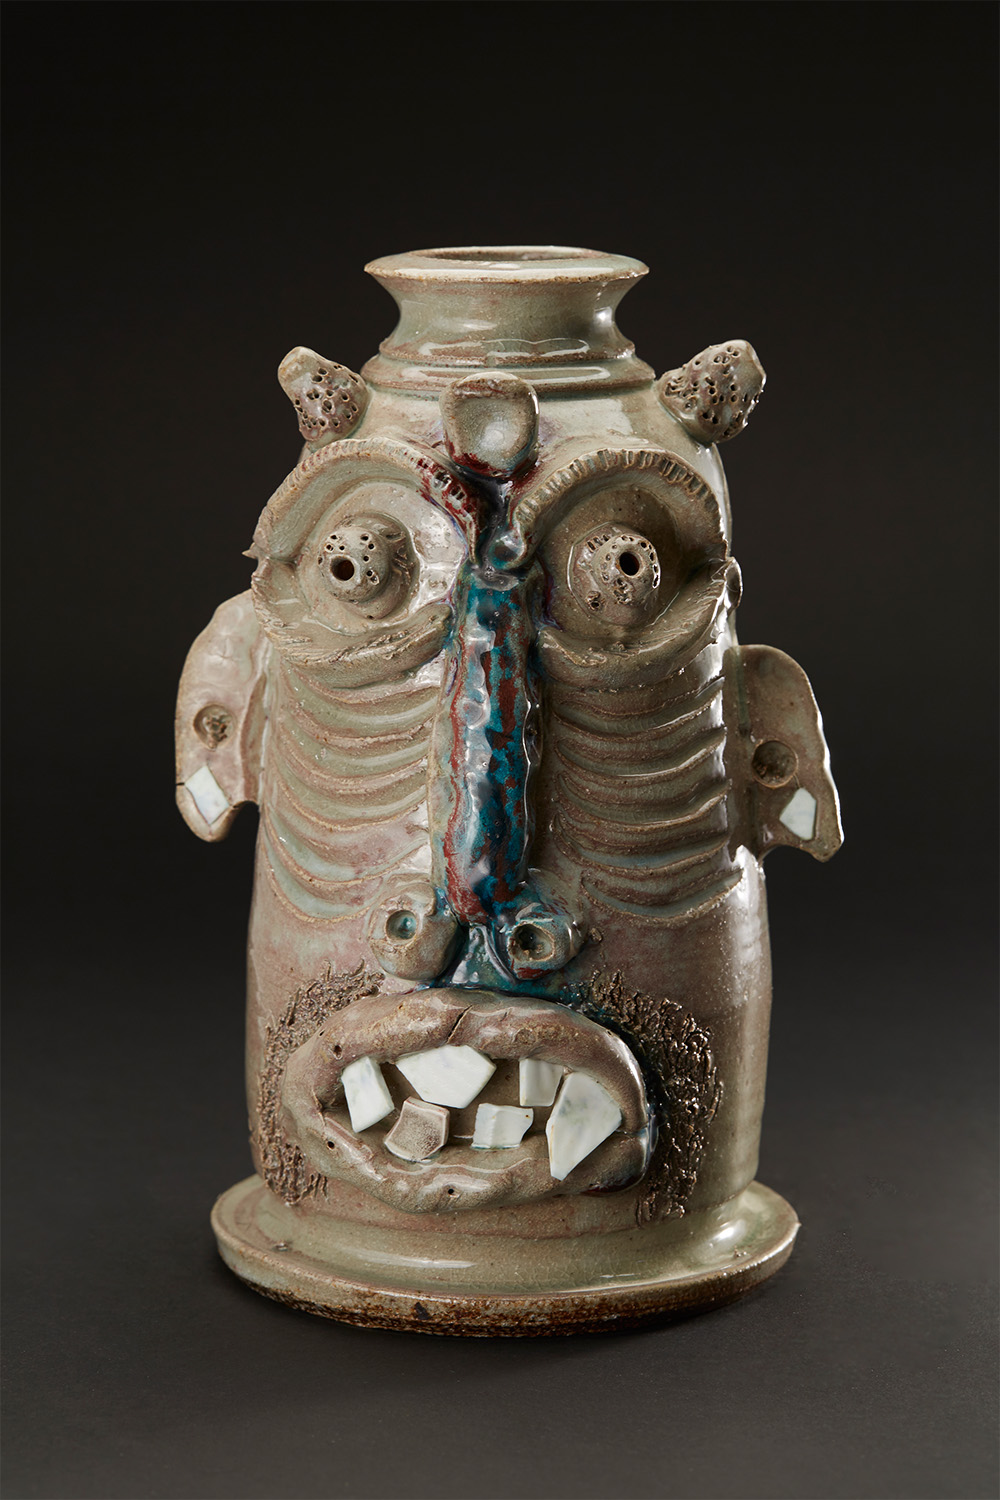 Jim McDowell    Free All People Now / My Hands Are Up Don't Shoot  , 2016 Ceramic, fired in a gas soda kiln; made of high fire clay, glazed with Malcolm Davis shino, embellished with china teeth and red and blue glass 11.5 x 7 x 7 inches 29.2 x 17.8 x 17.8 cm JMcD 9